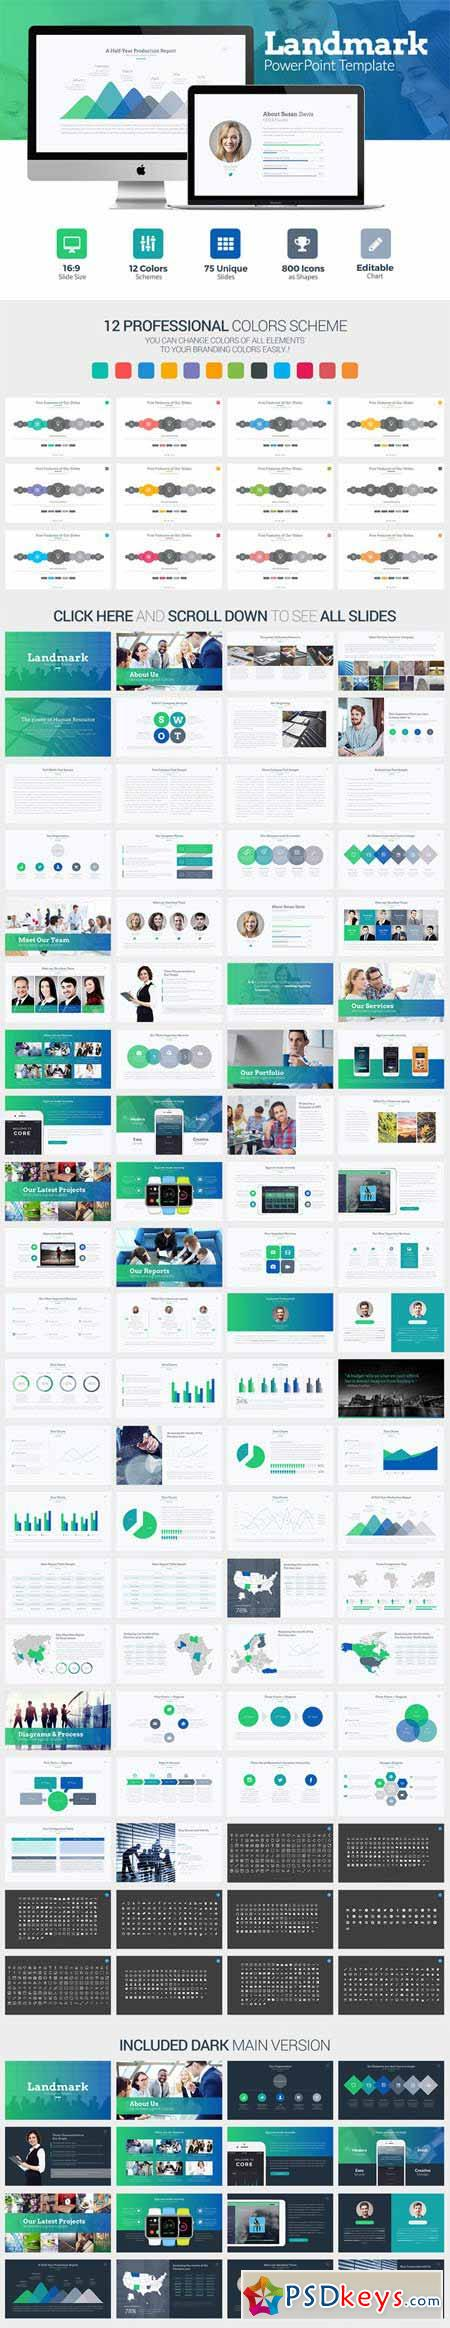 Landmark PowerPoint Template 369142